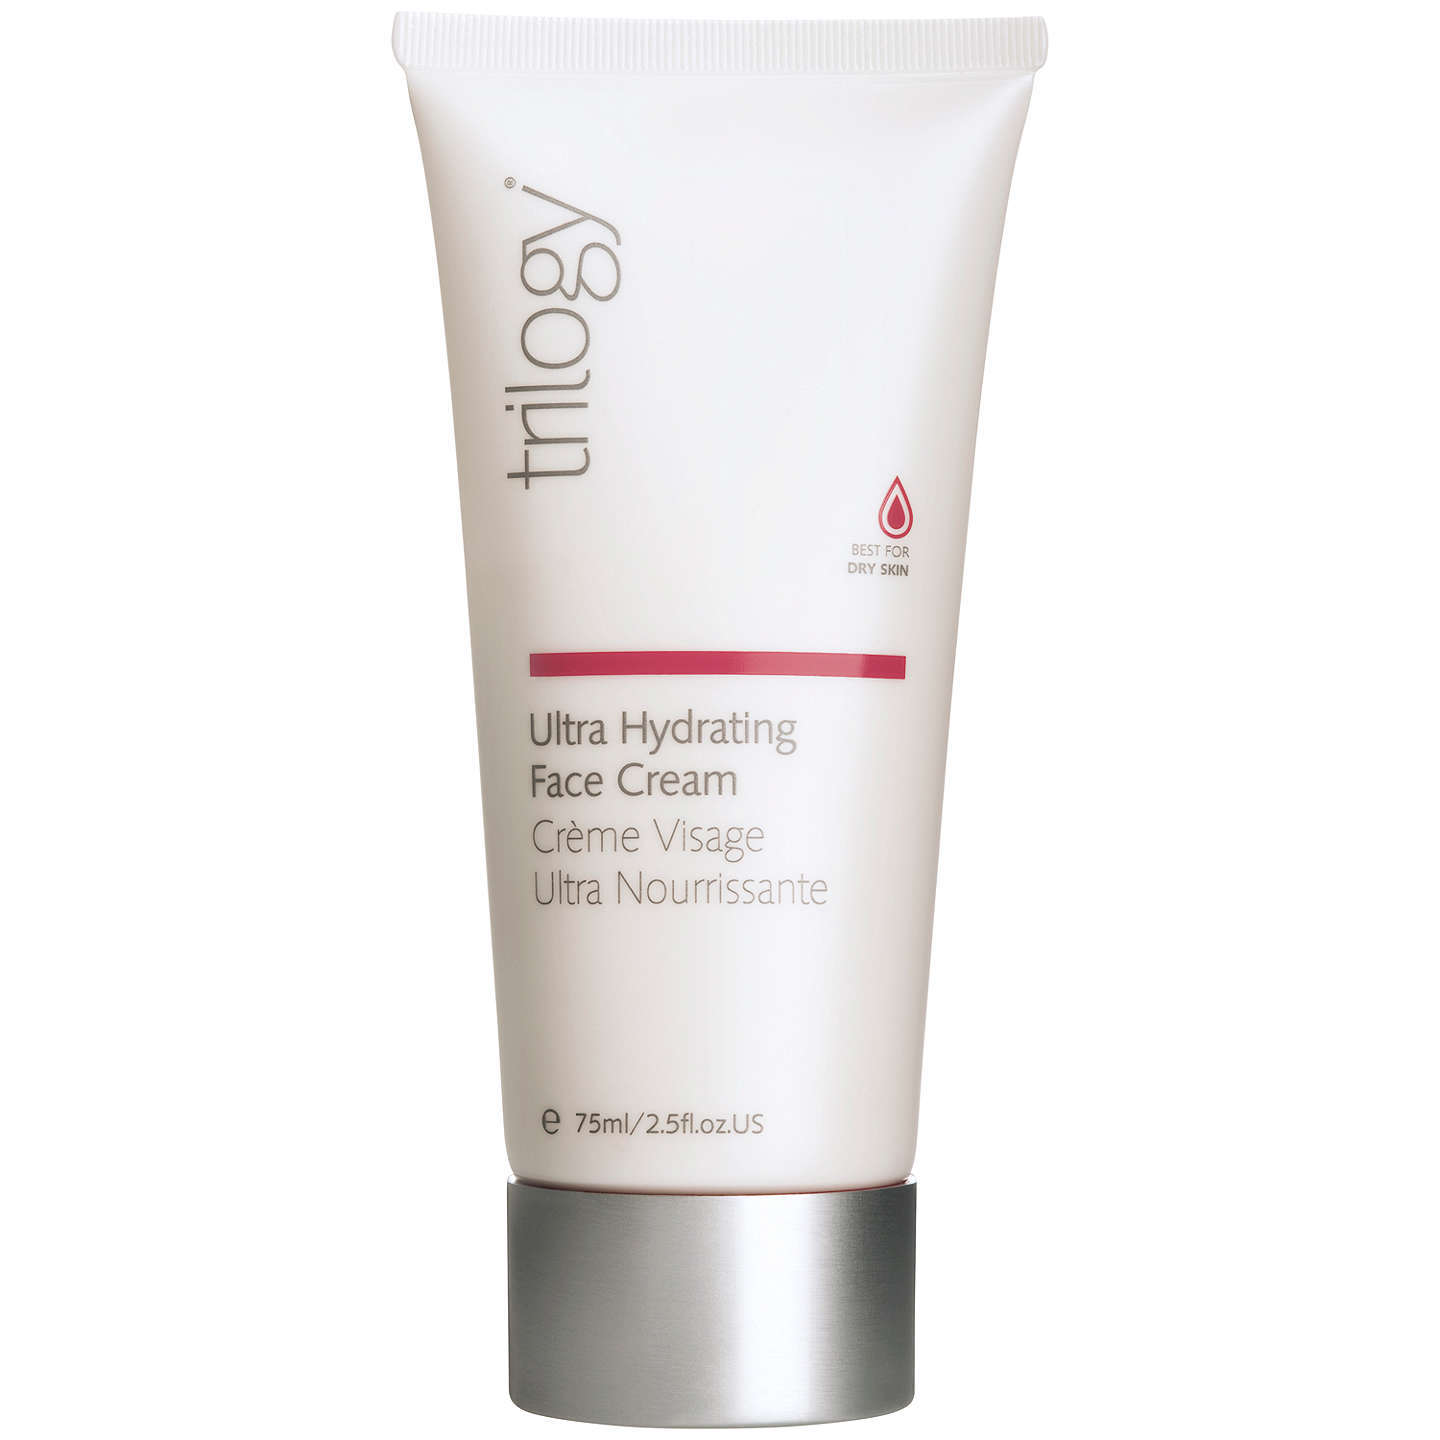 BuyTrilogy Ultra Hydrating Face Cream, 75ml Online at johnlewis.com